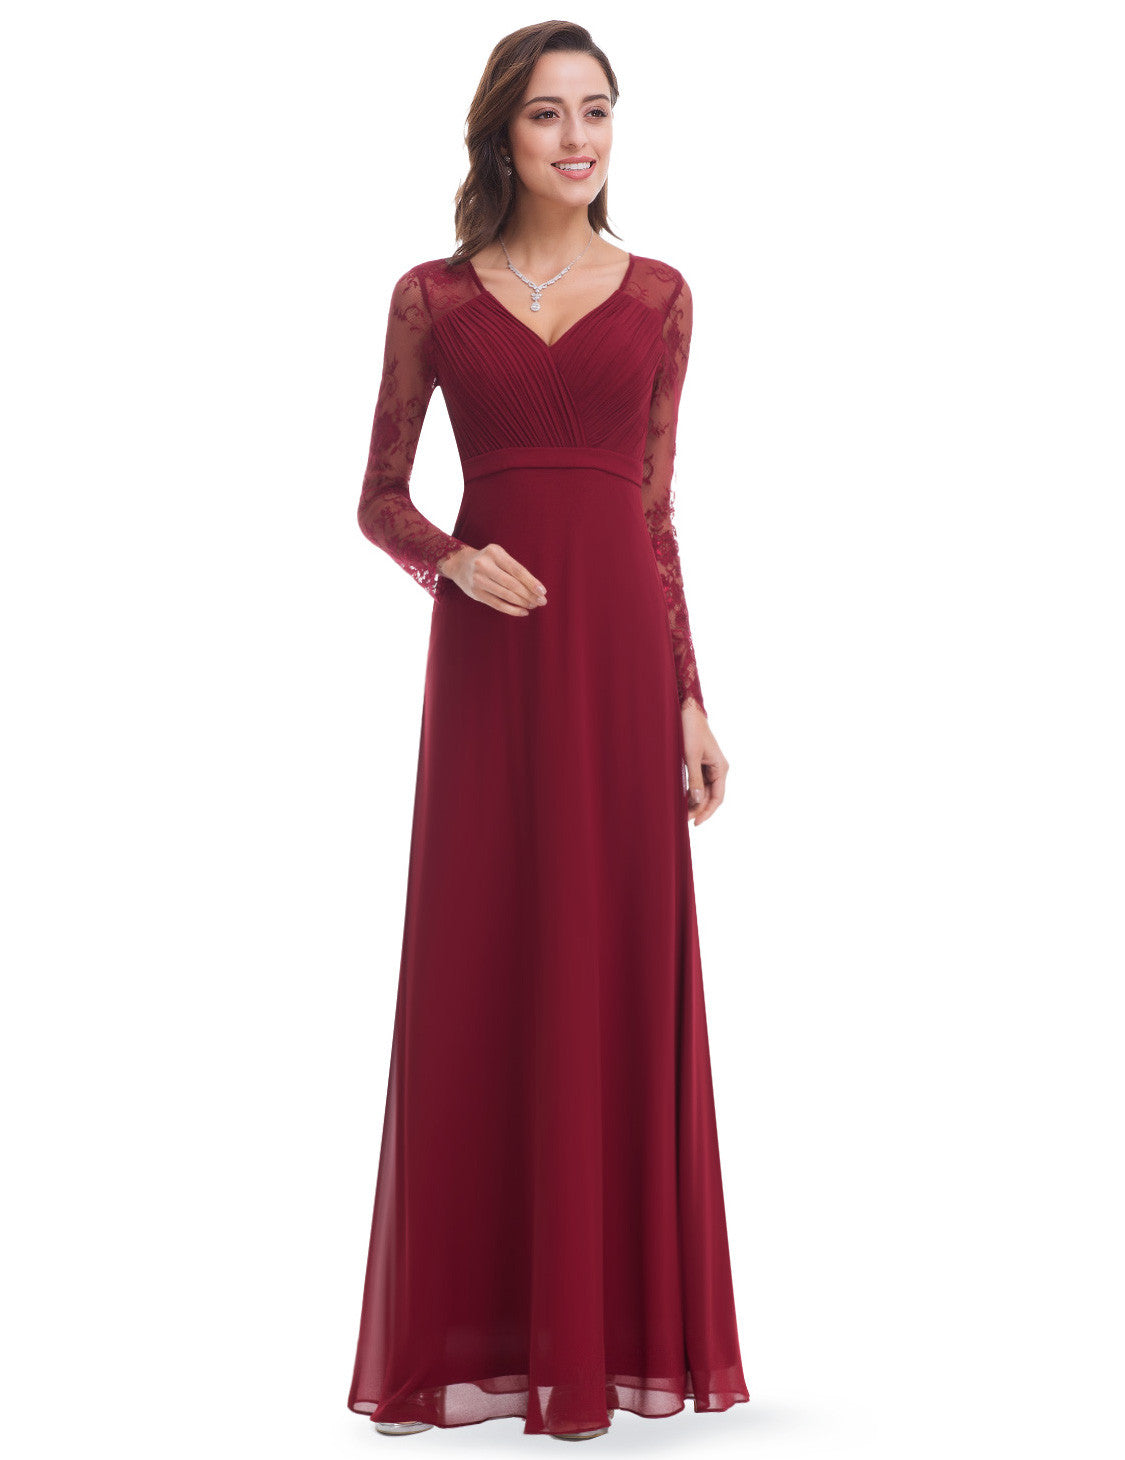 1c1ab9644da Obeige Burgundy Elegant V-neck Long Sleeve Evening Dress